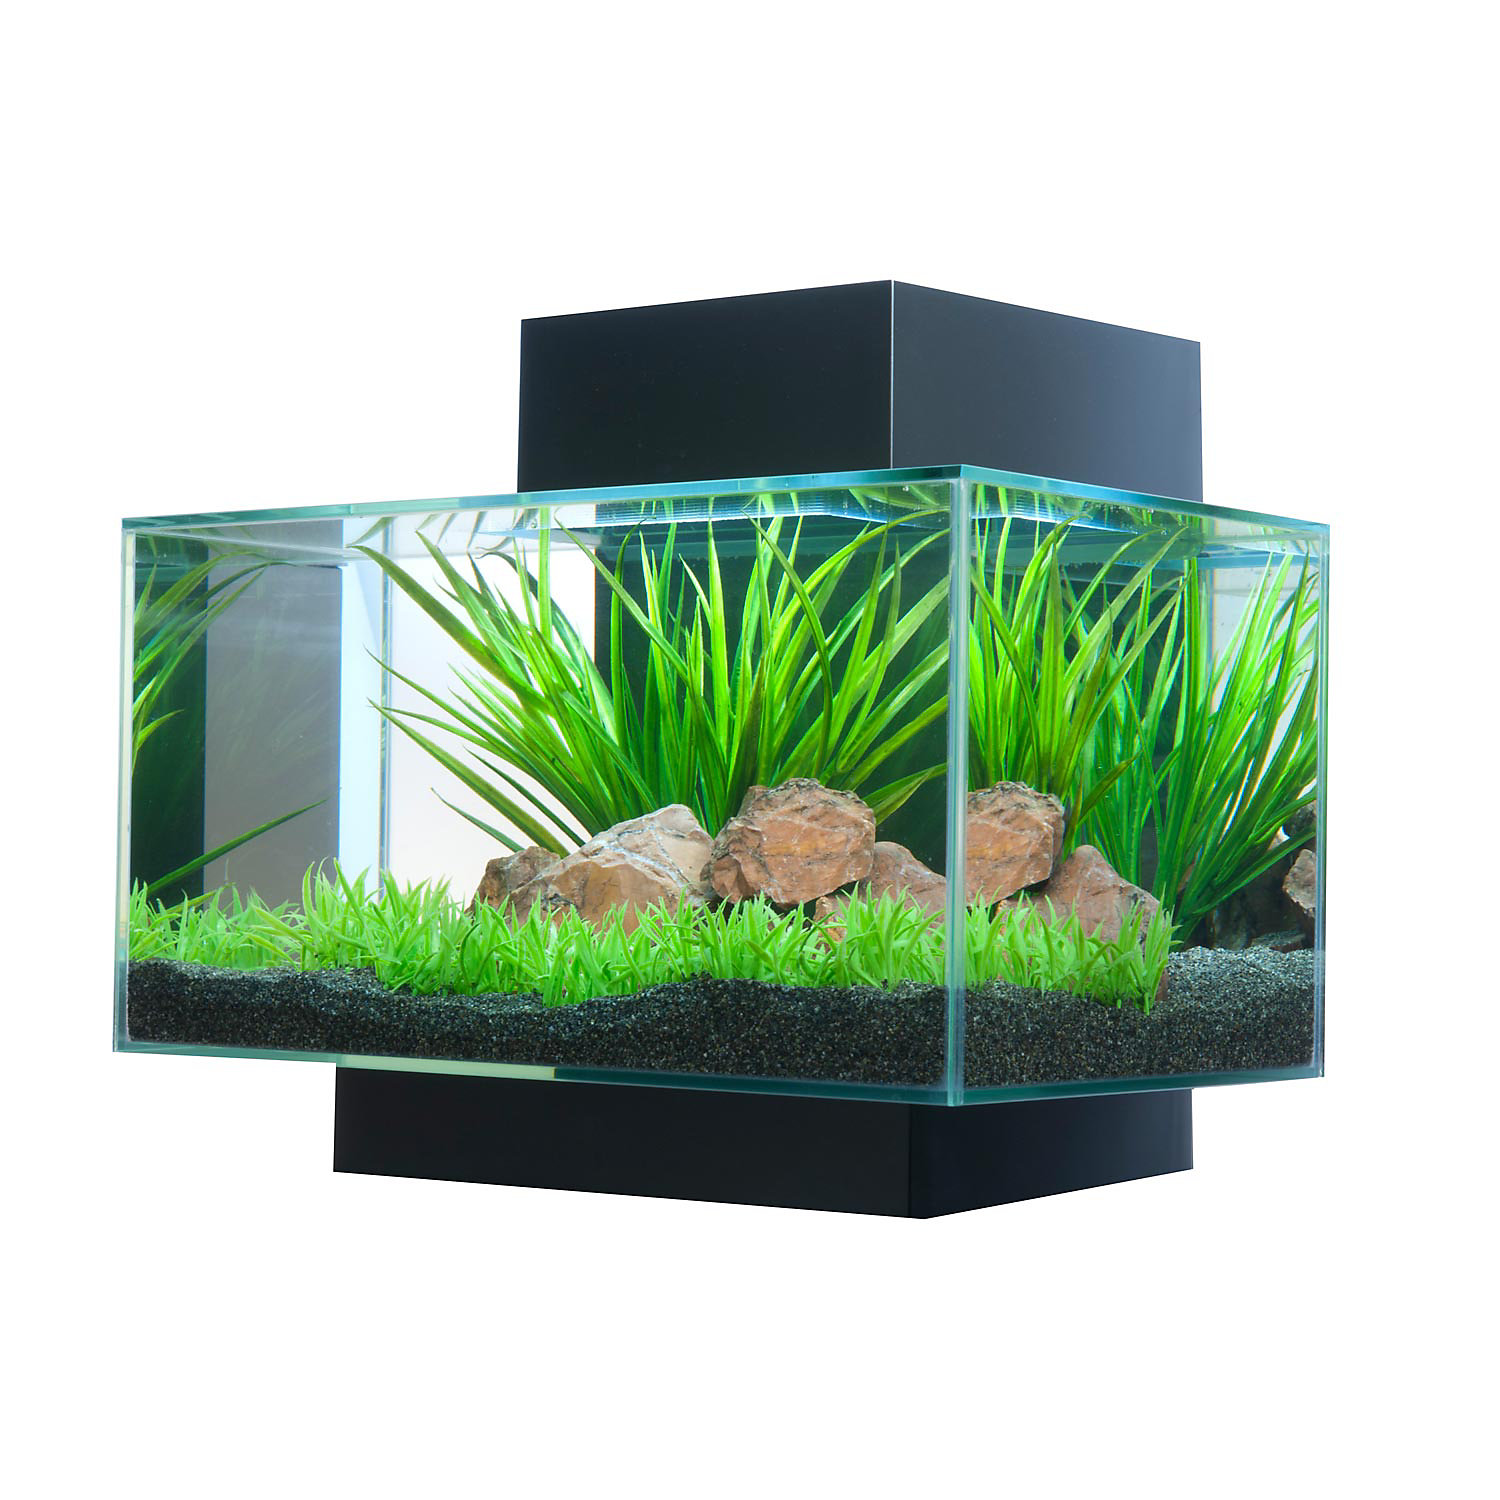 Fluval Edge Aquarium Black 21 Led 6 Gallon